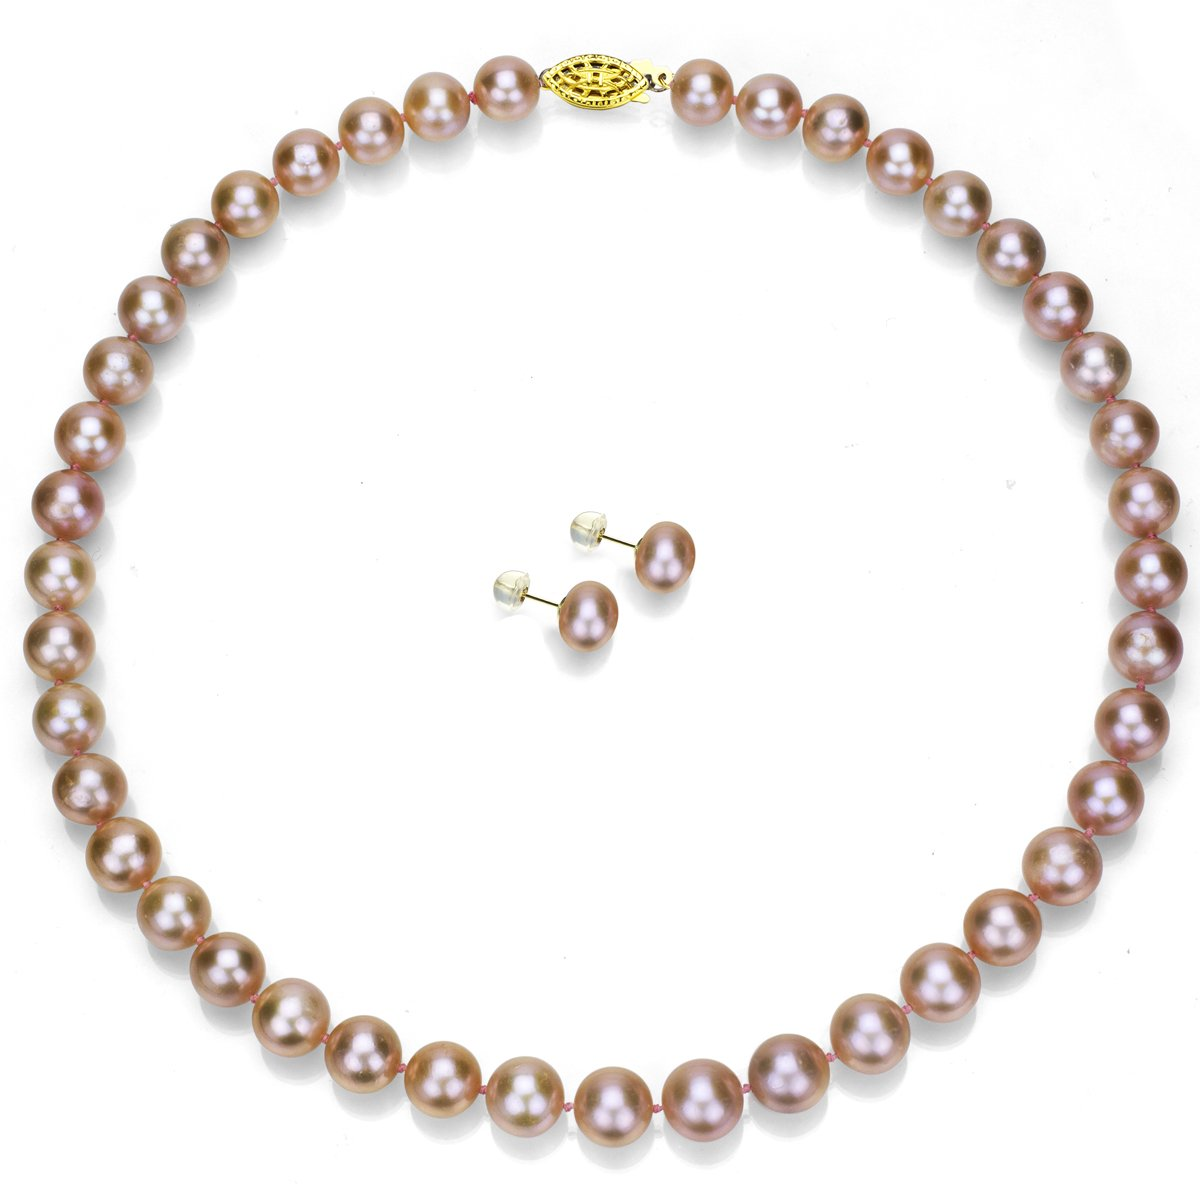 14k Yellow Gold 6-6.5mm Pink Freshwater Cultured Pearl Necklace 18'' and Stud Earrings Set